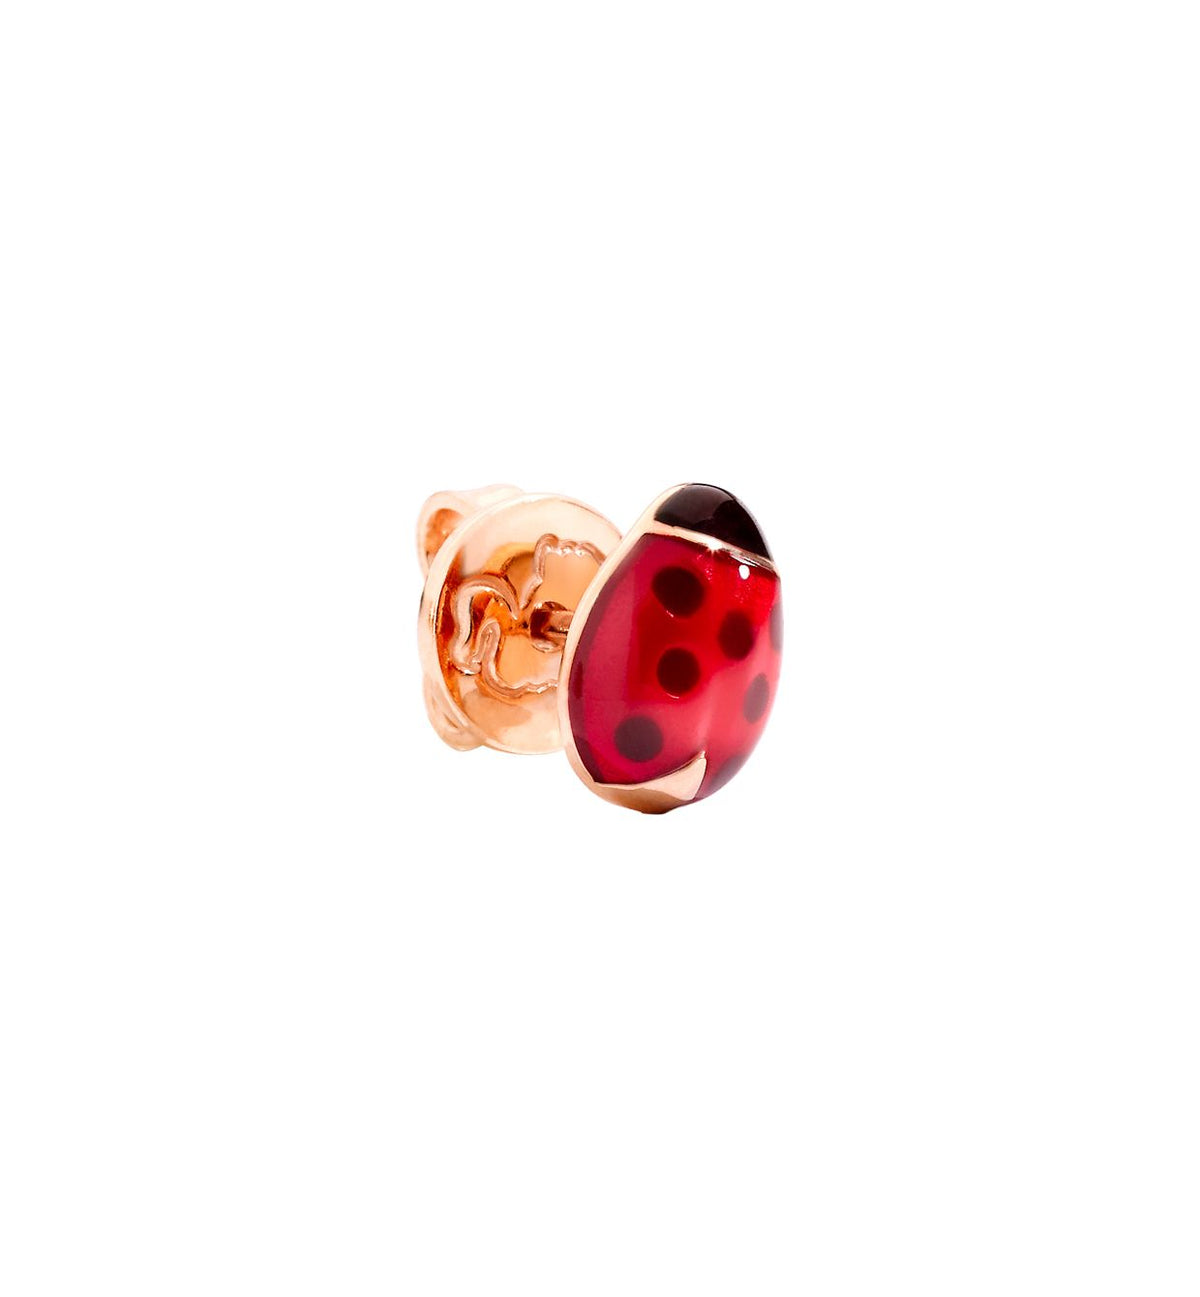 DoDo Ladybug Earring in 9k Rose Gold with Enamel - Orsini Jewellers NZ